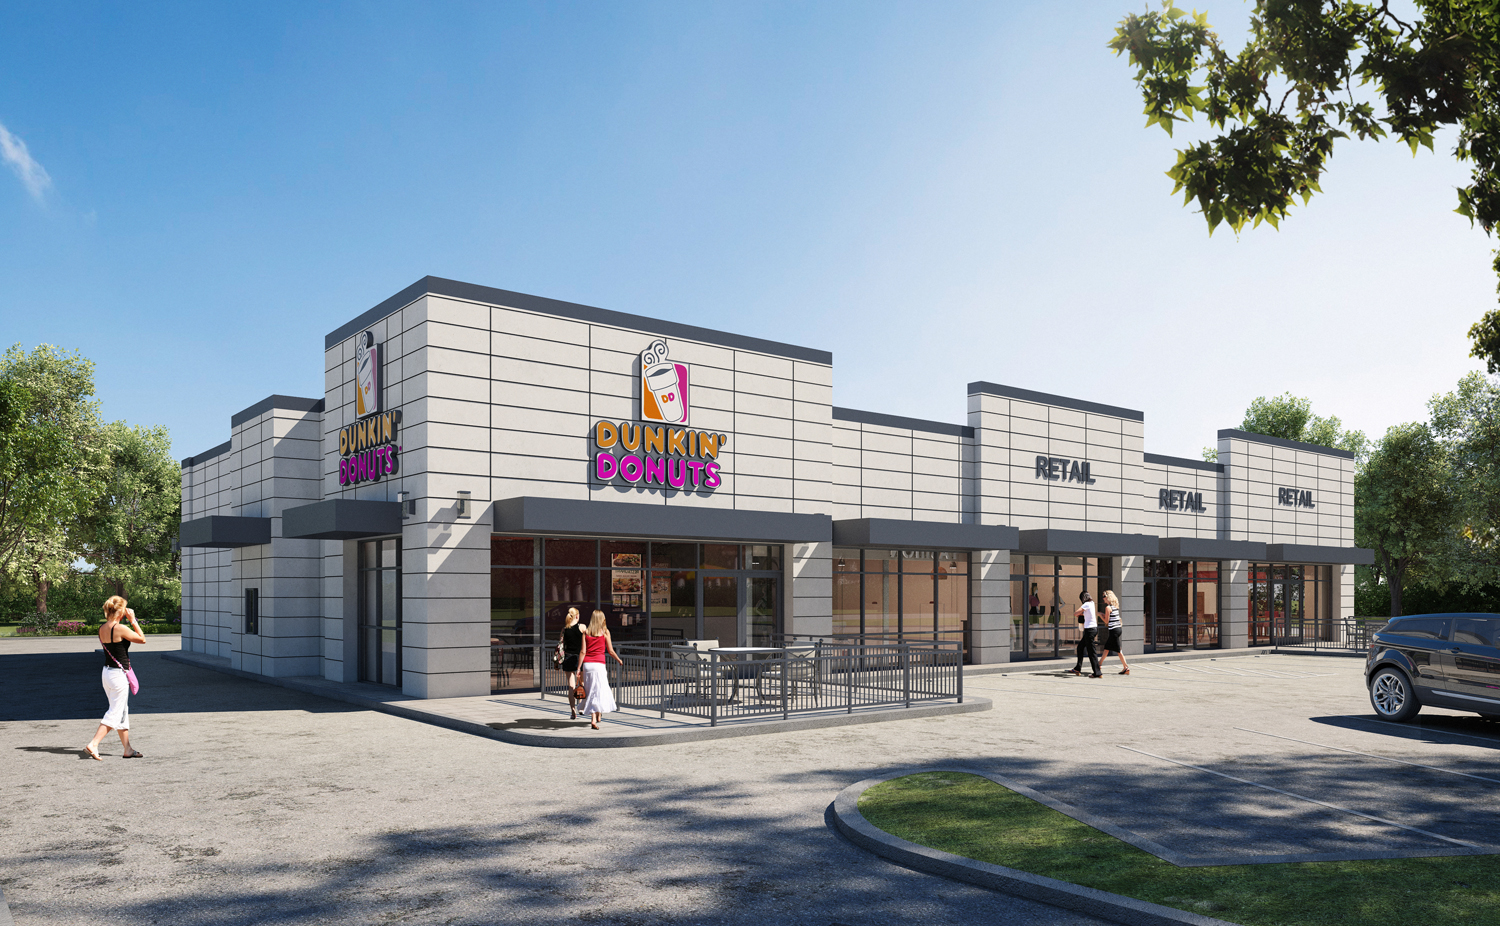 Owls Nest rendering featuring Dunkin Donuts